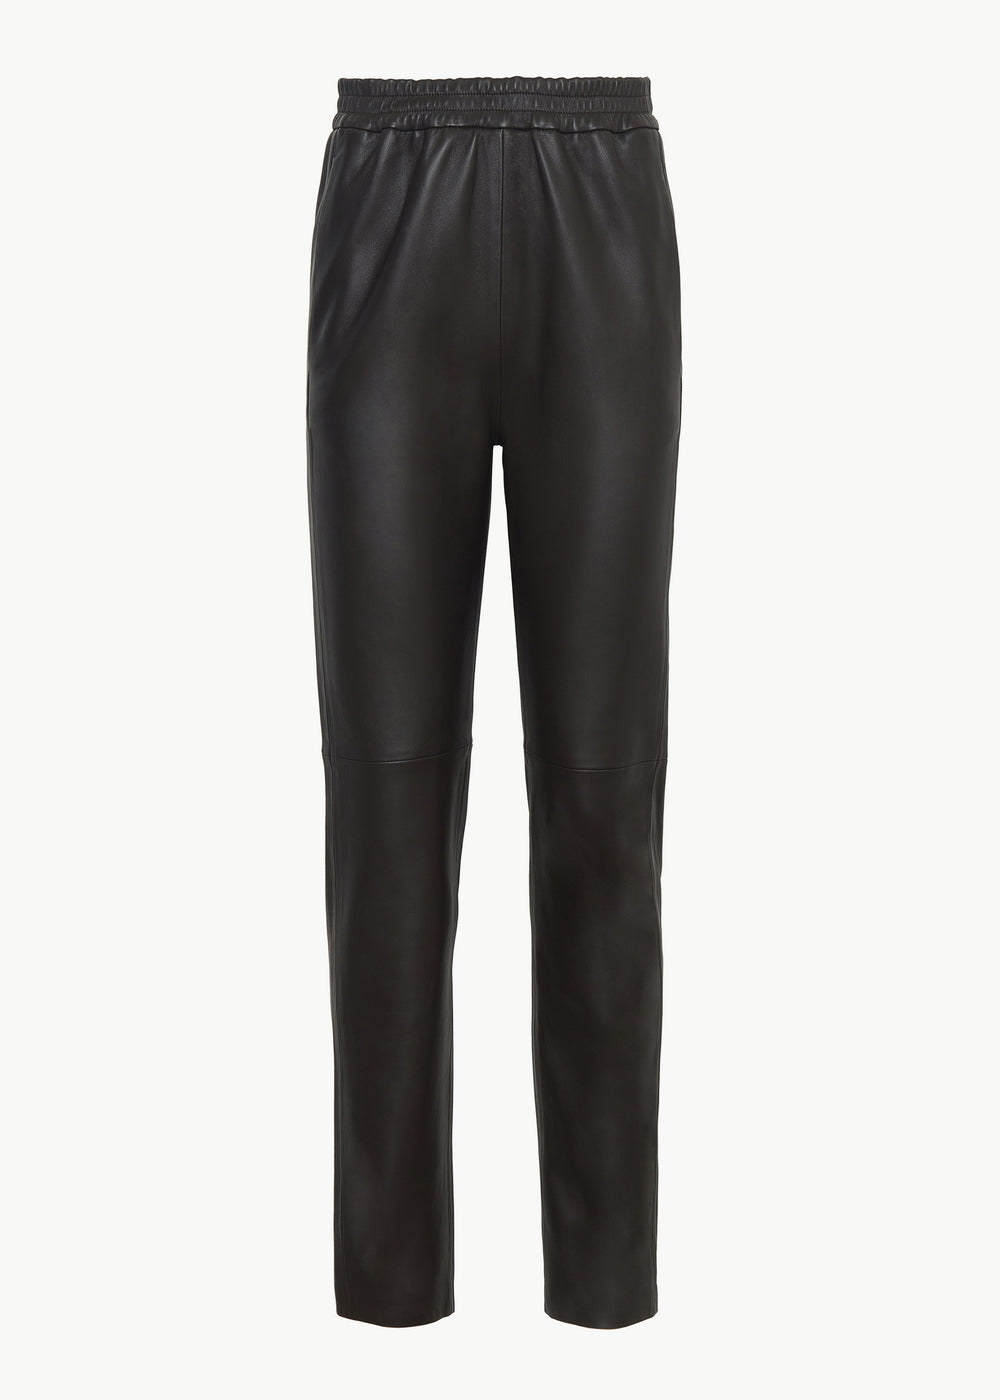 Jogger Pant in Lambskin - Brown - CO